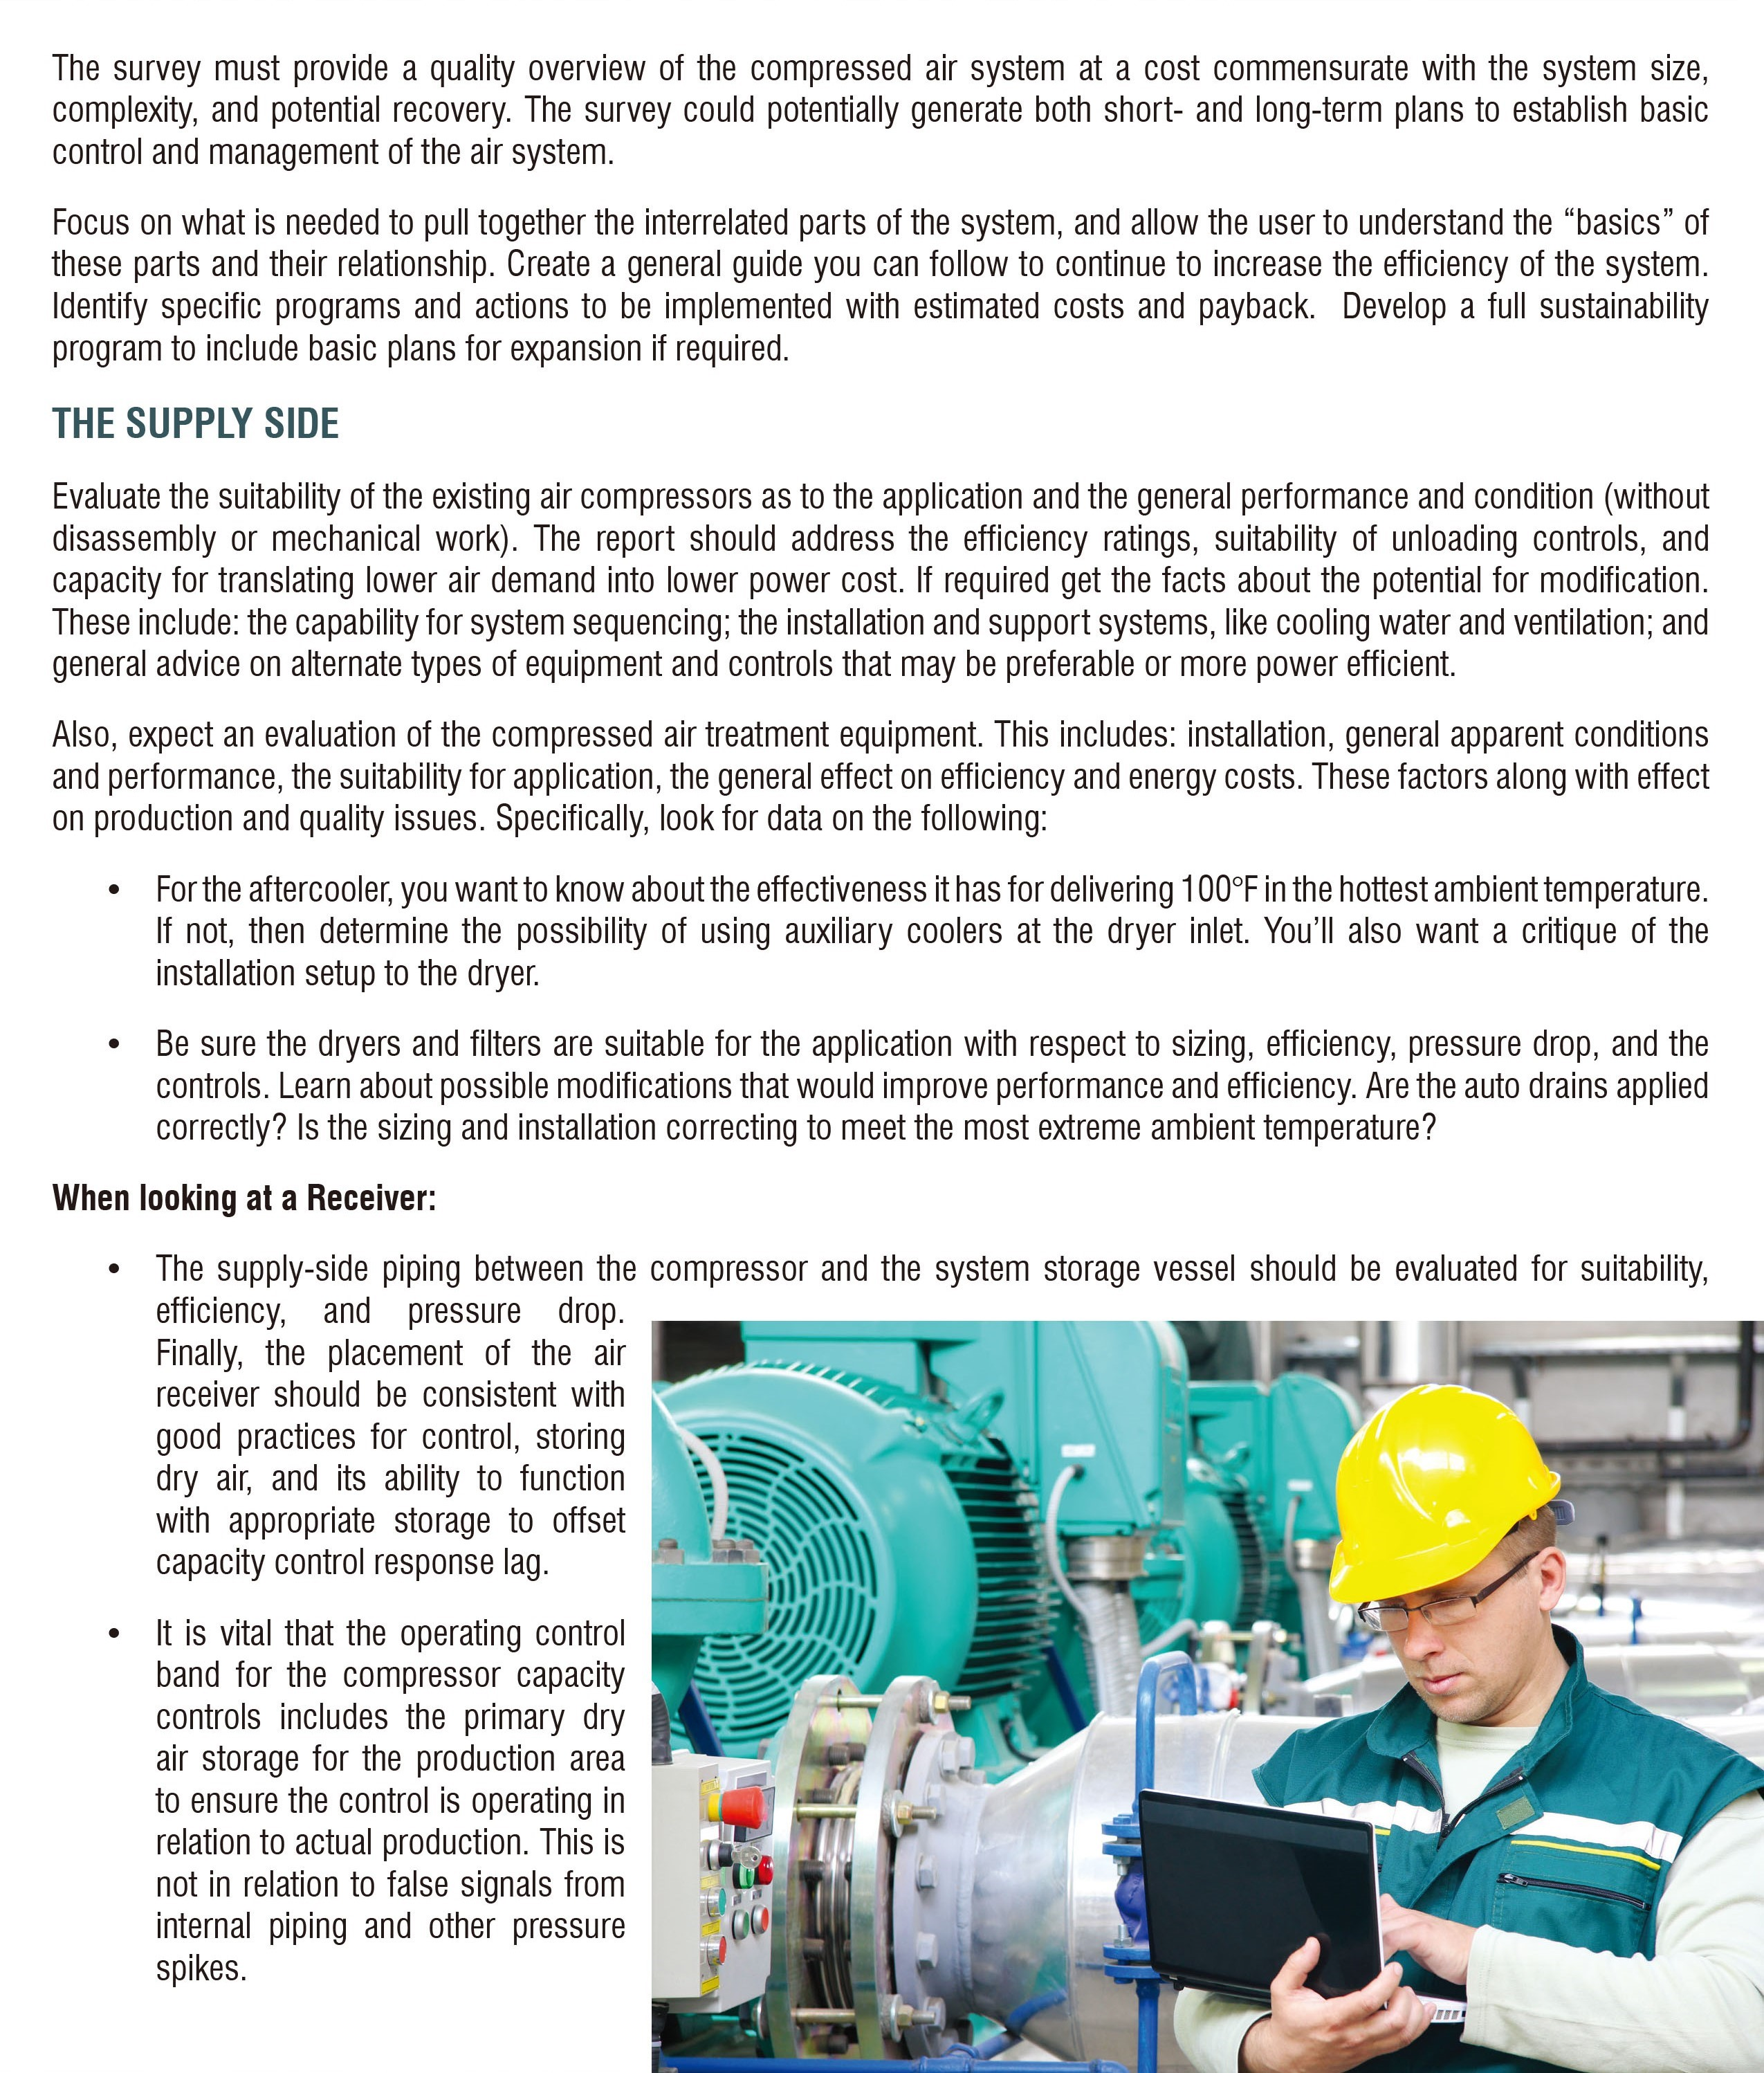 ind_images/Tech_Articles/Eco_Solutions/BWhat_is_an_Air_Audit-White_Paper-2017-3.jpg